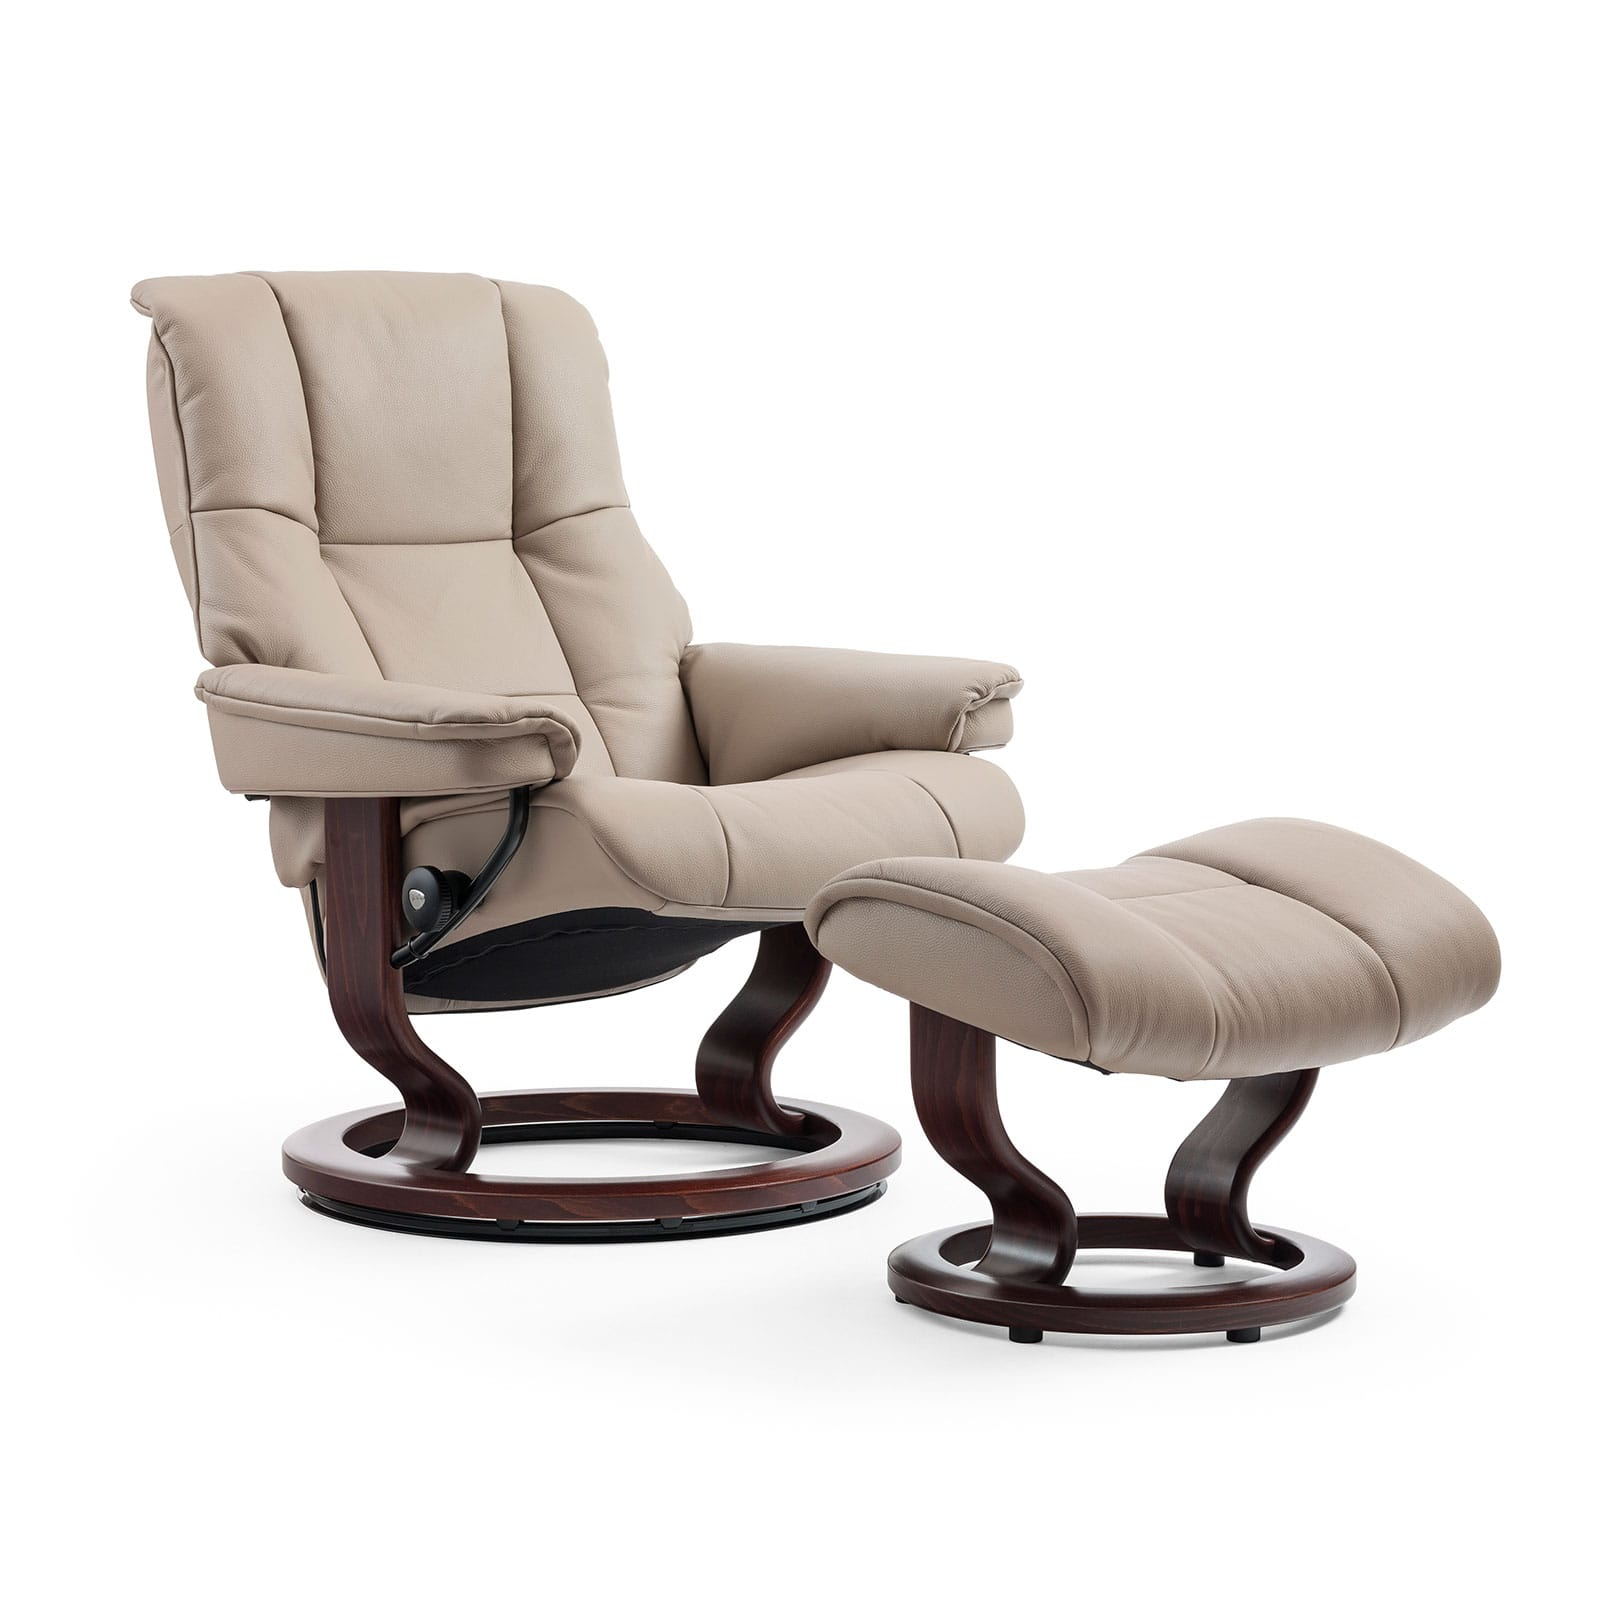 stressless sessel mayfair cori beige classic braun hocker. Black Bedroom Furniture Sets. Home Design Ideas